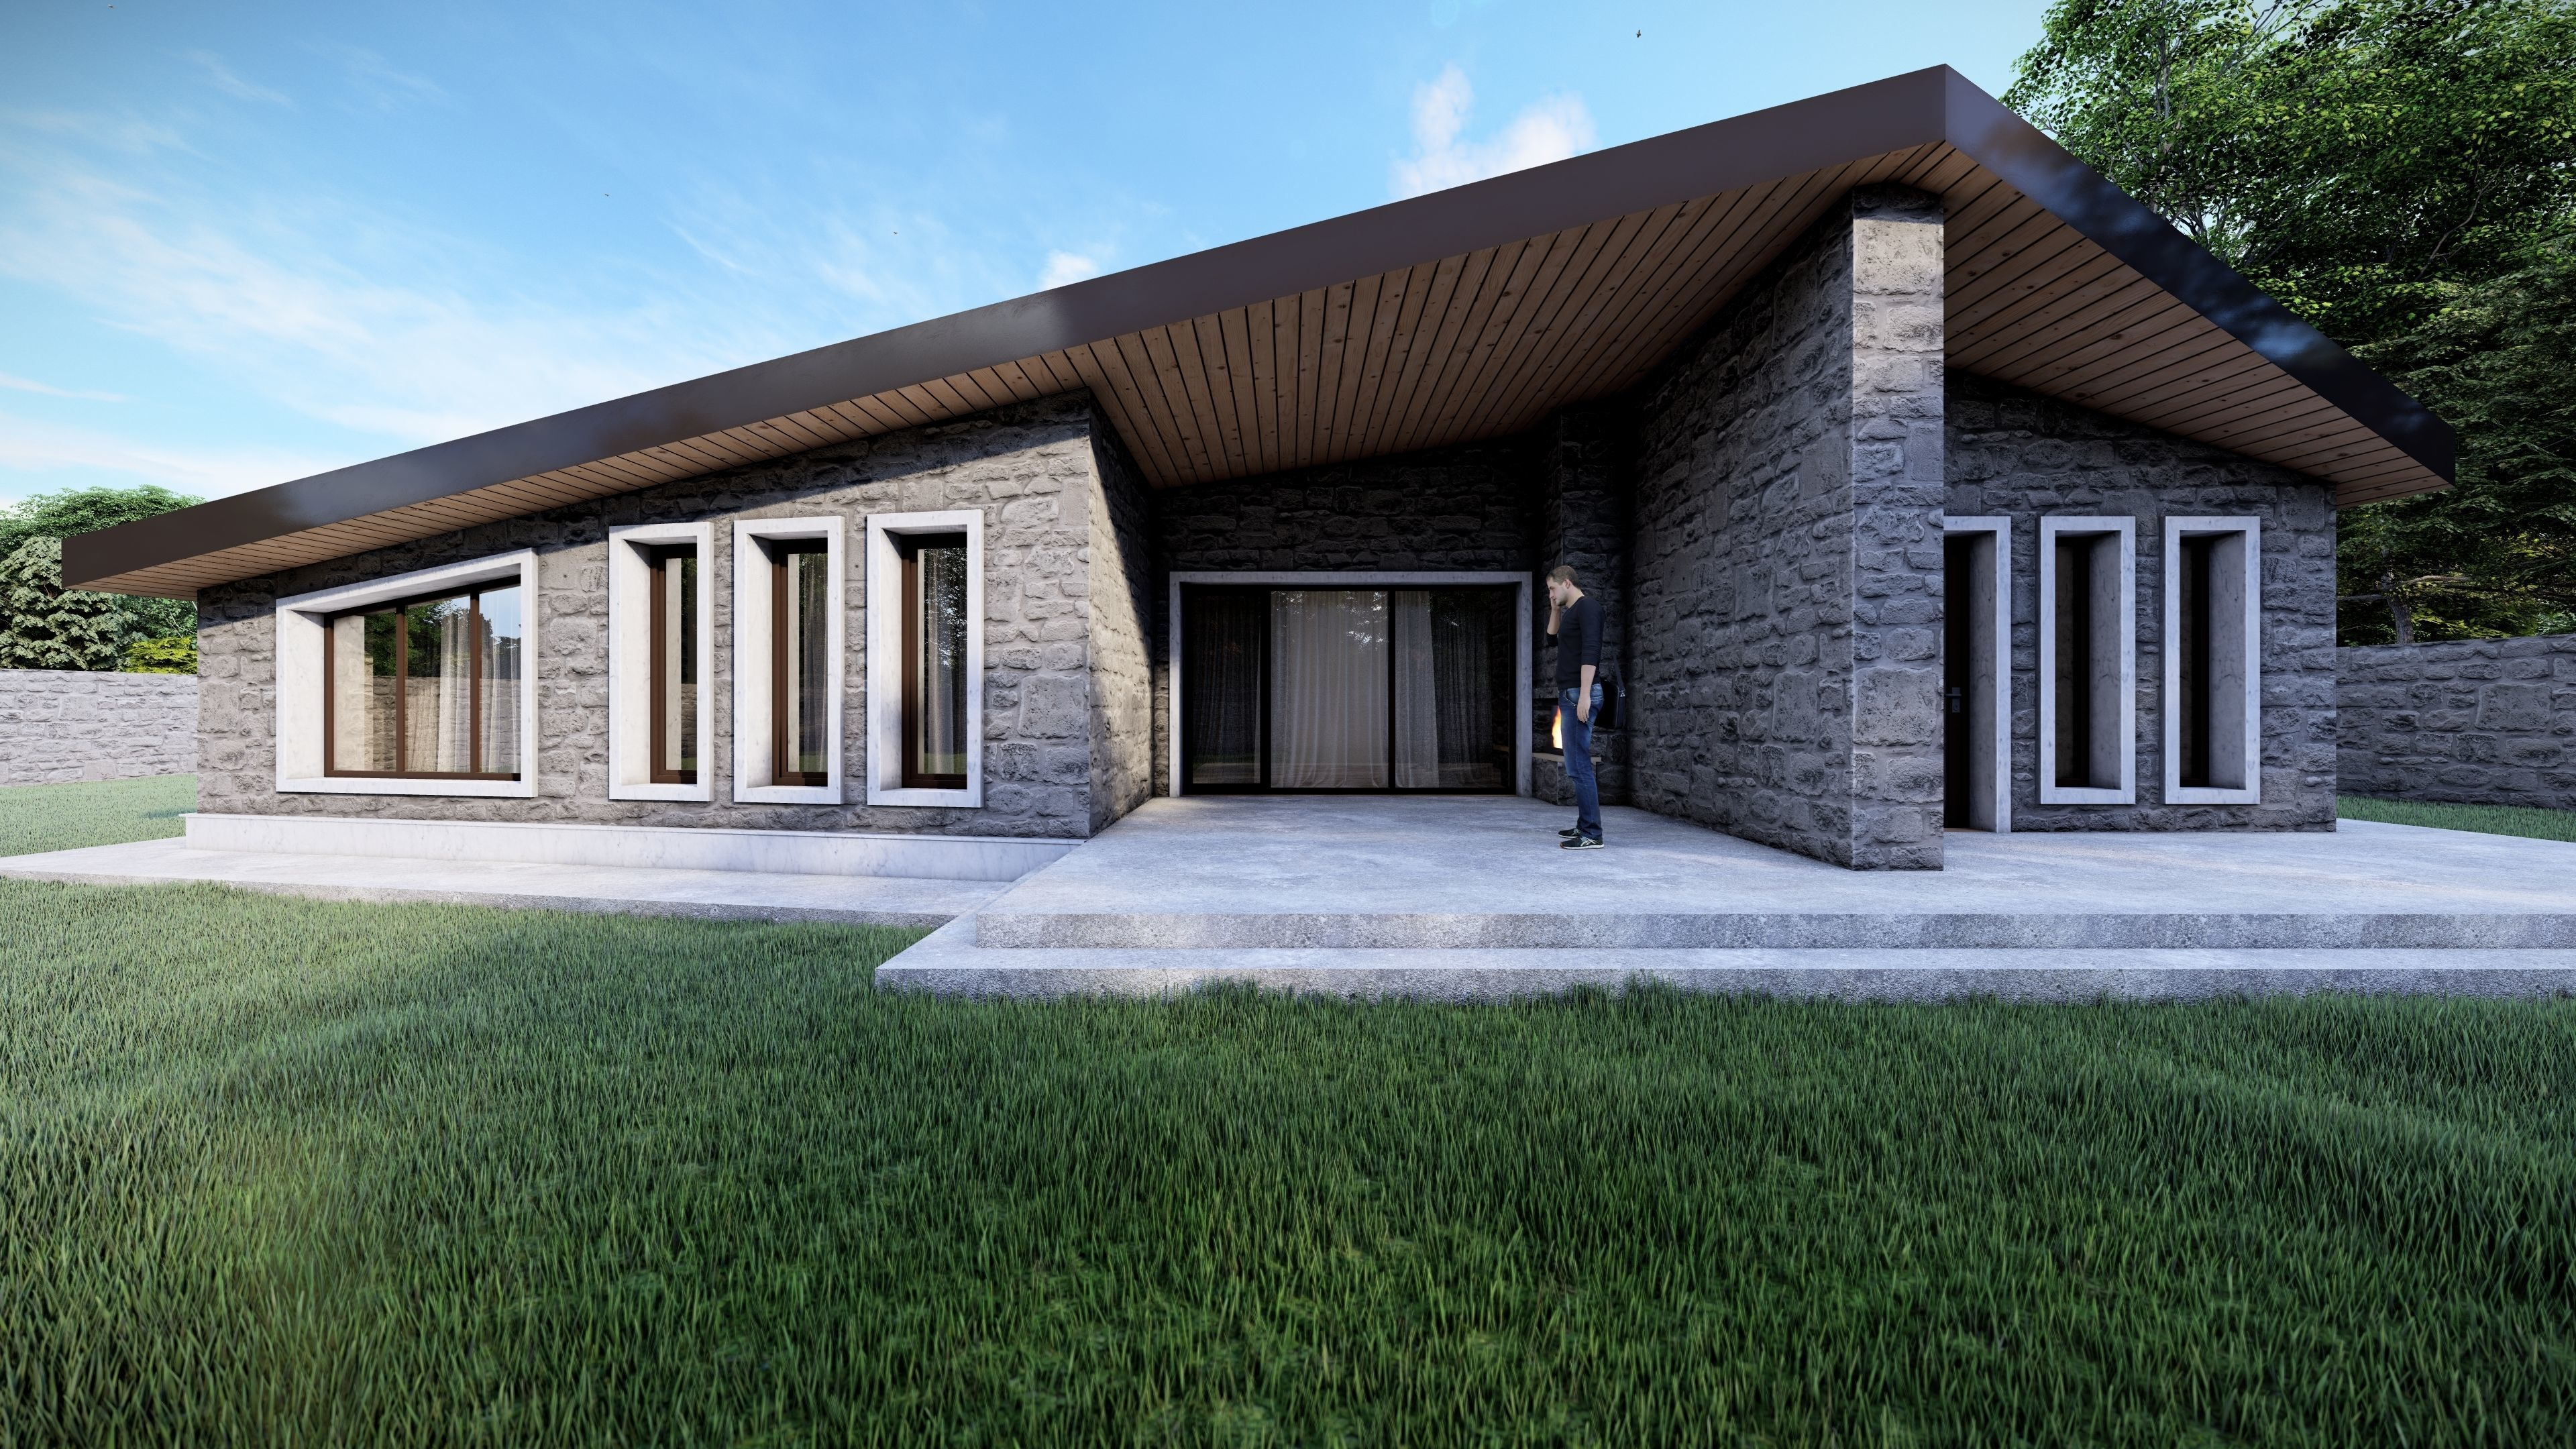 Stone House - Single Story Residential Building